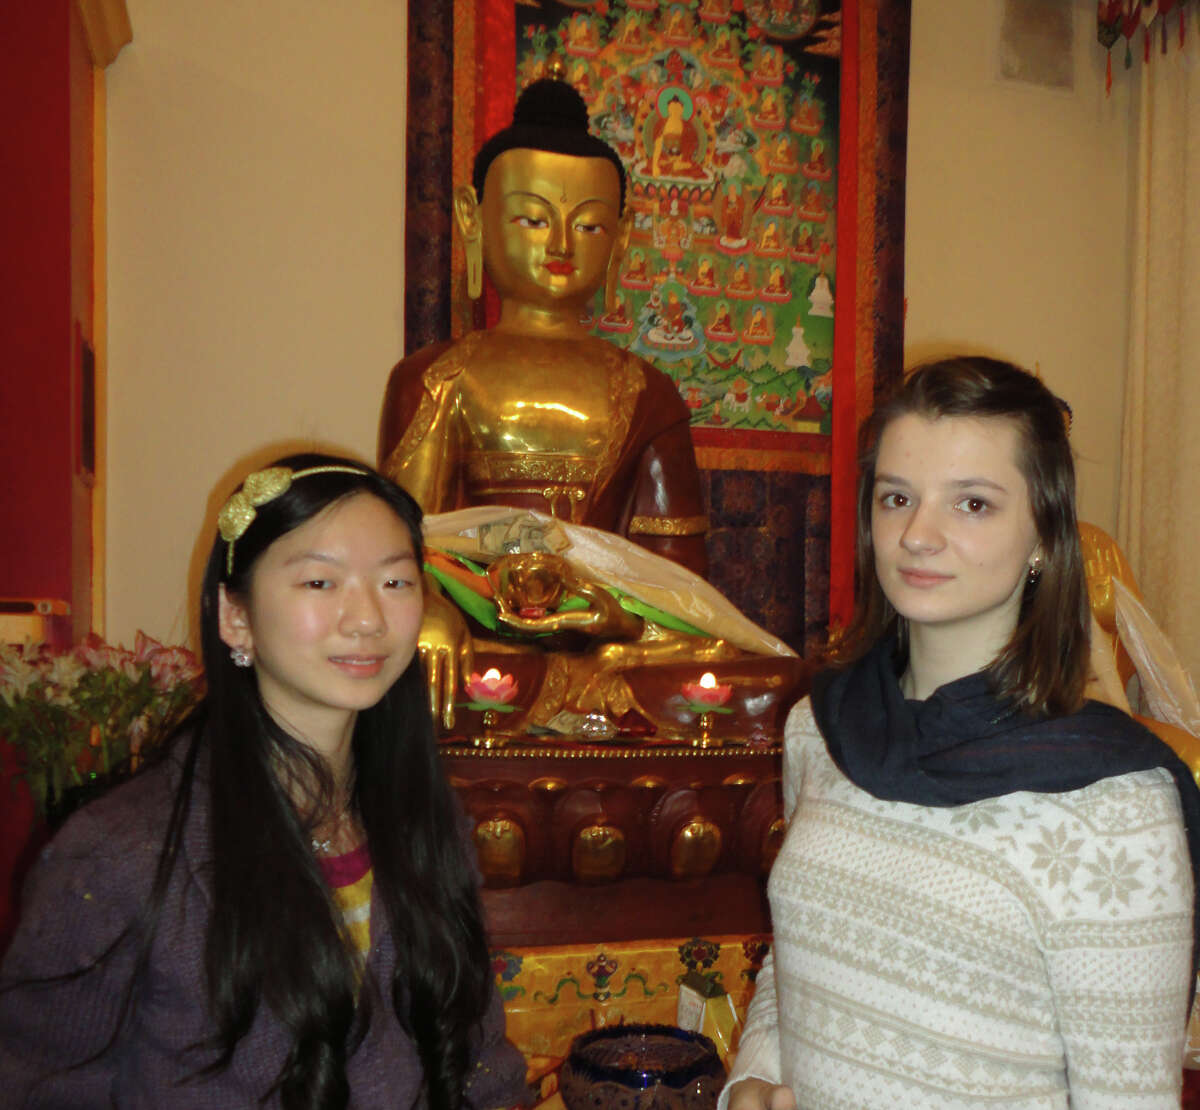 Chiana Yang, left, 14, and Alisa Korneyeva, 15, freshmen at Fairfield Warde High School, in front of a statue of Buddha at the Tibetan Buddhist Center for Universal Peace in Redding, which they visited Tuesday. Fairfield CT 1/8/13